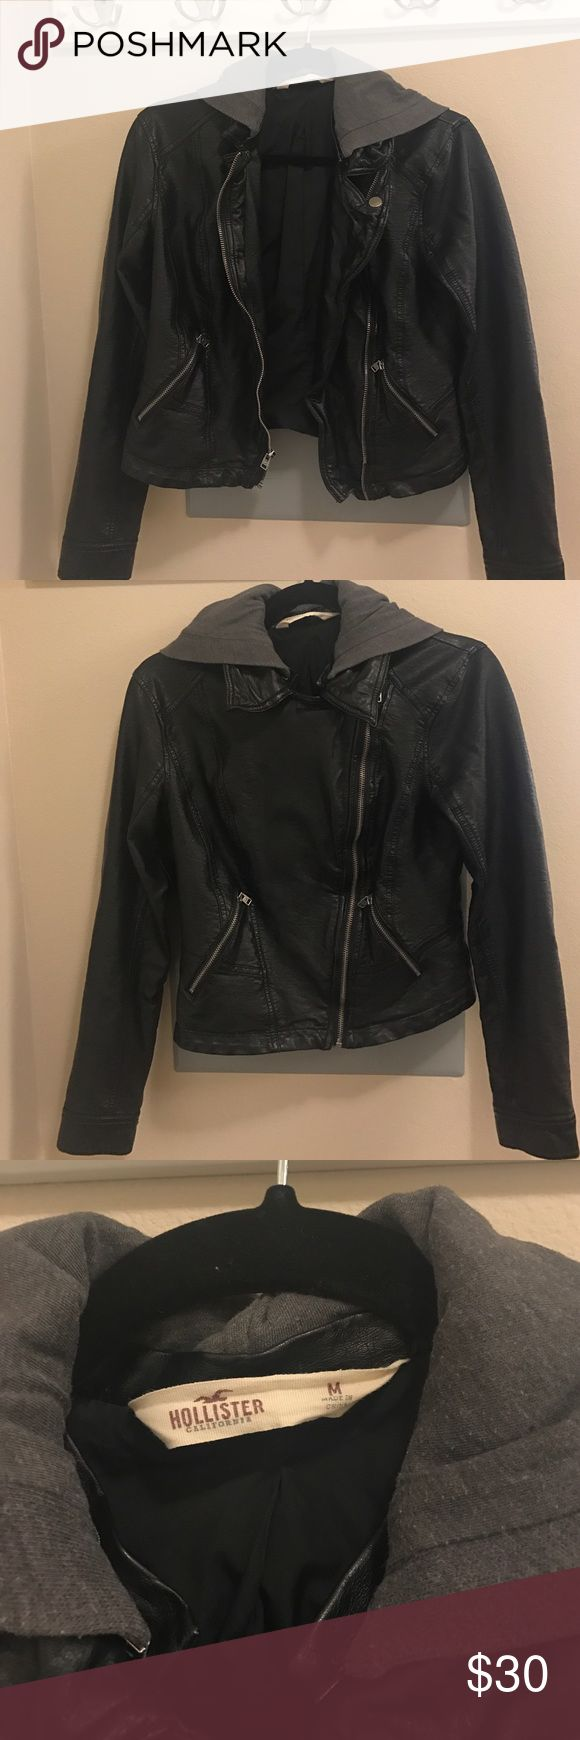 HOLLISTER VEGAN LEATHER JACKET Vegan leather jacket with hood from Hollister. Worn but in good condition. Very popular style not sold in stores anymore. Looks exactly like free people version. I have both and can't tell the difference honestly. Hollister Jackets & Coats